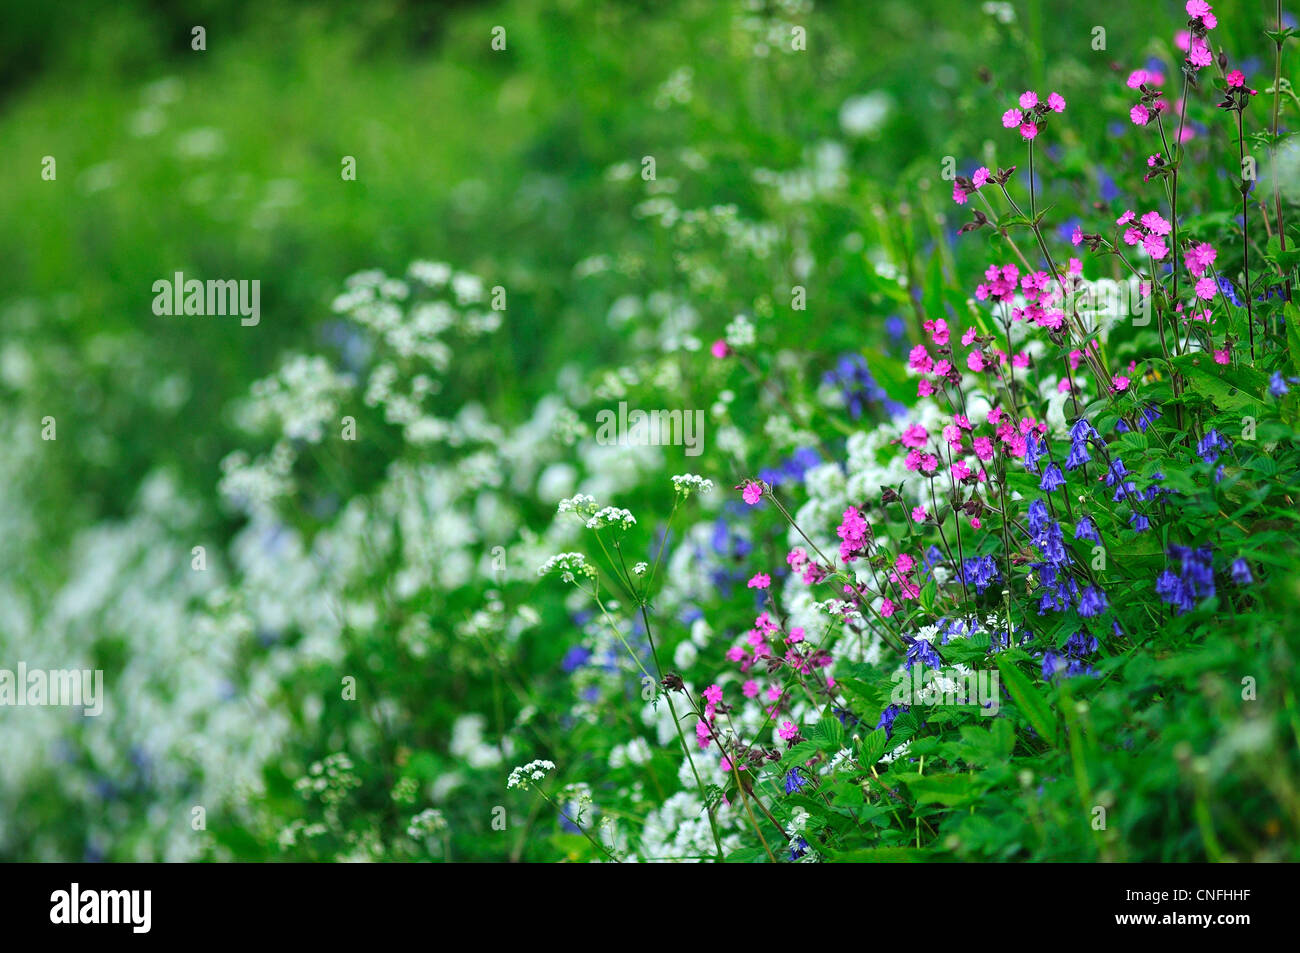 Bank Of Wild Flowers Stock Photos Bank Of Wild Flowers Stock